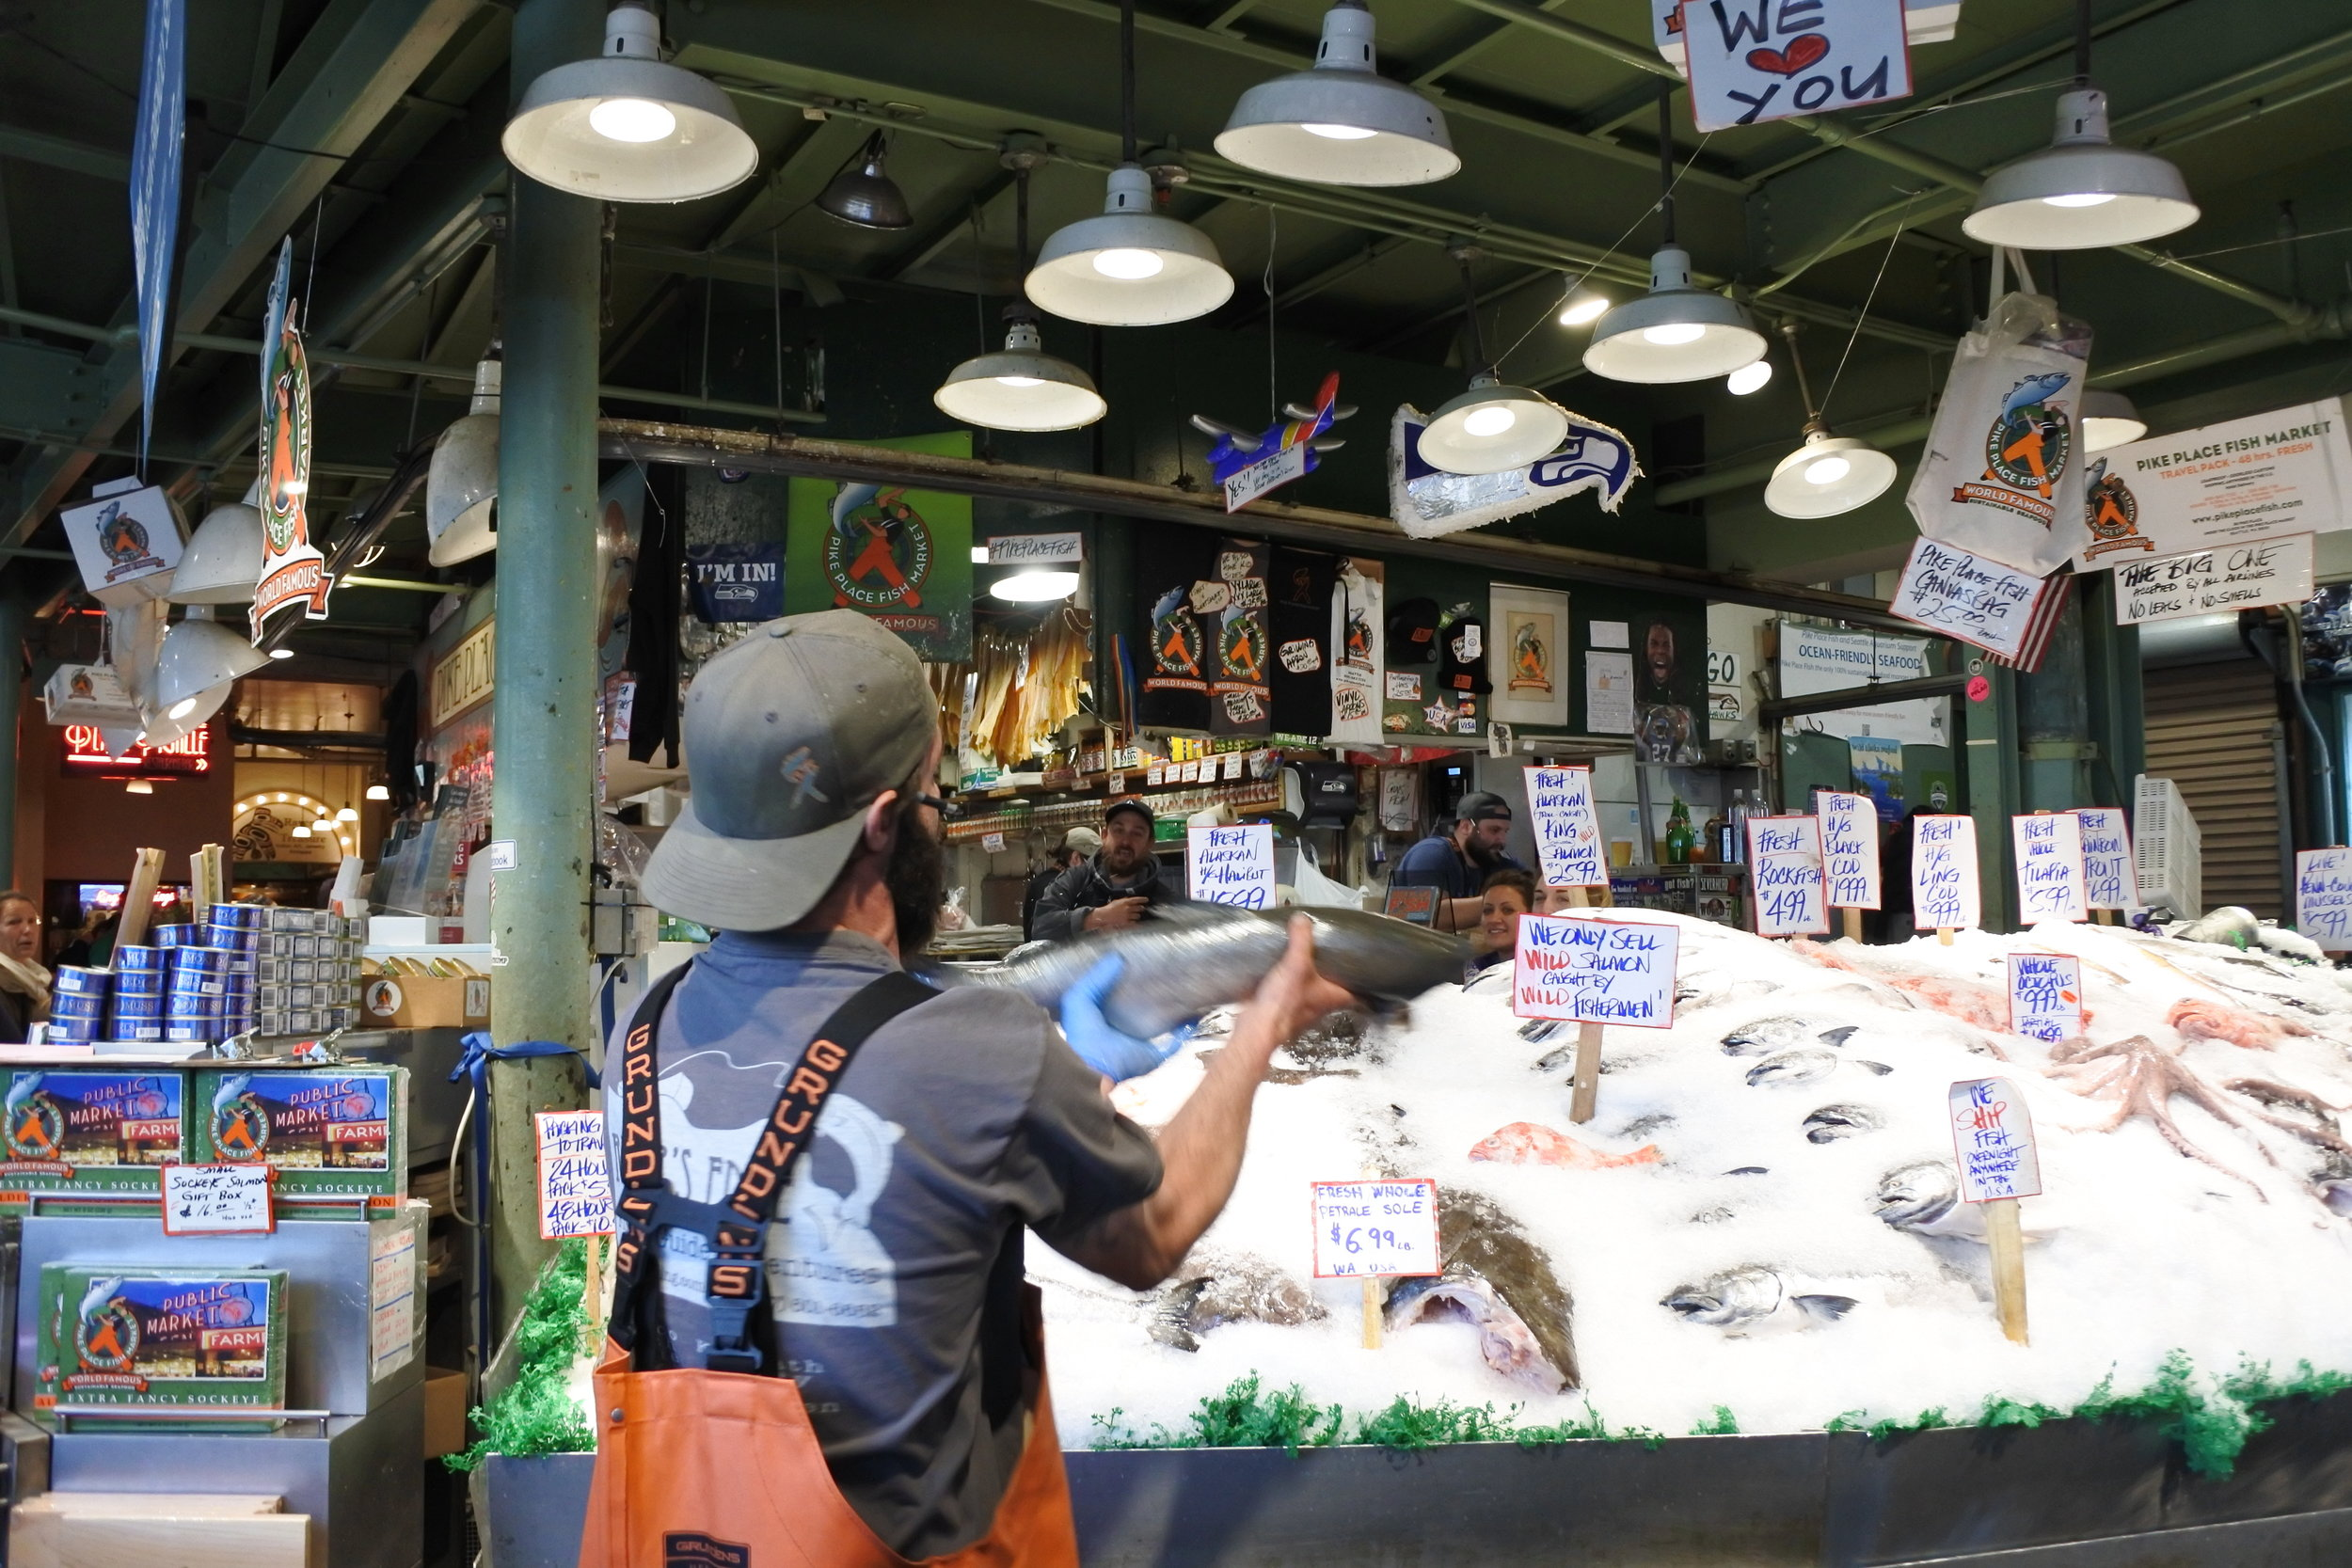 Fish-throwing musical-like entertainment at Pike's Public Market